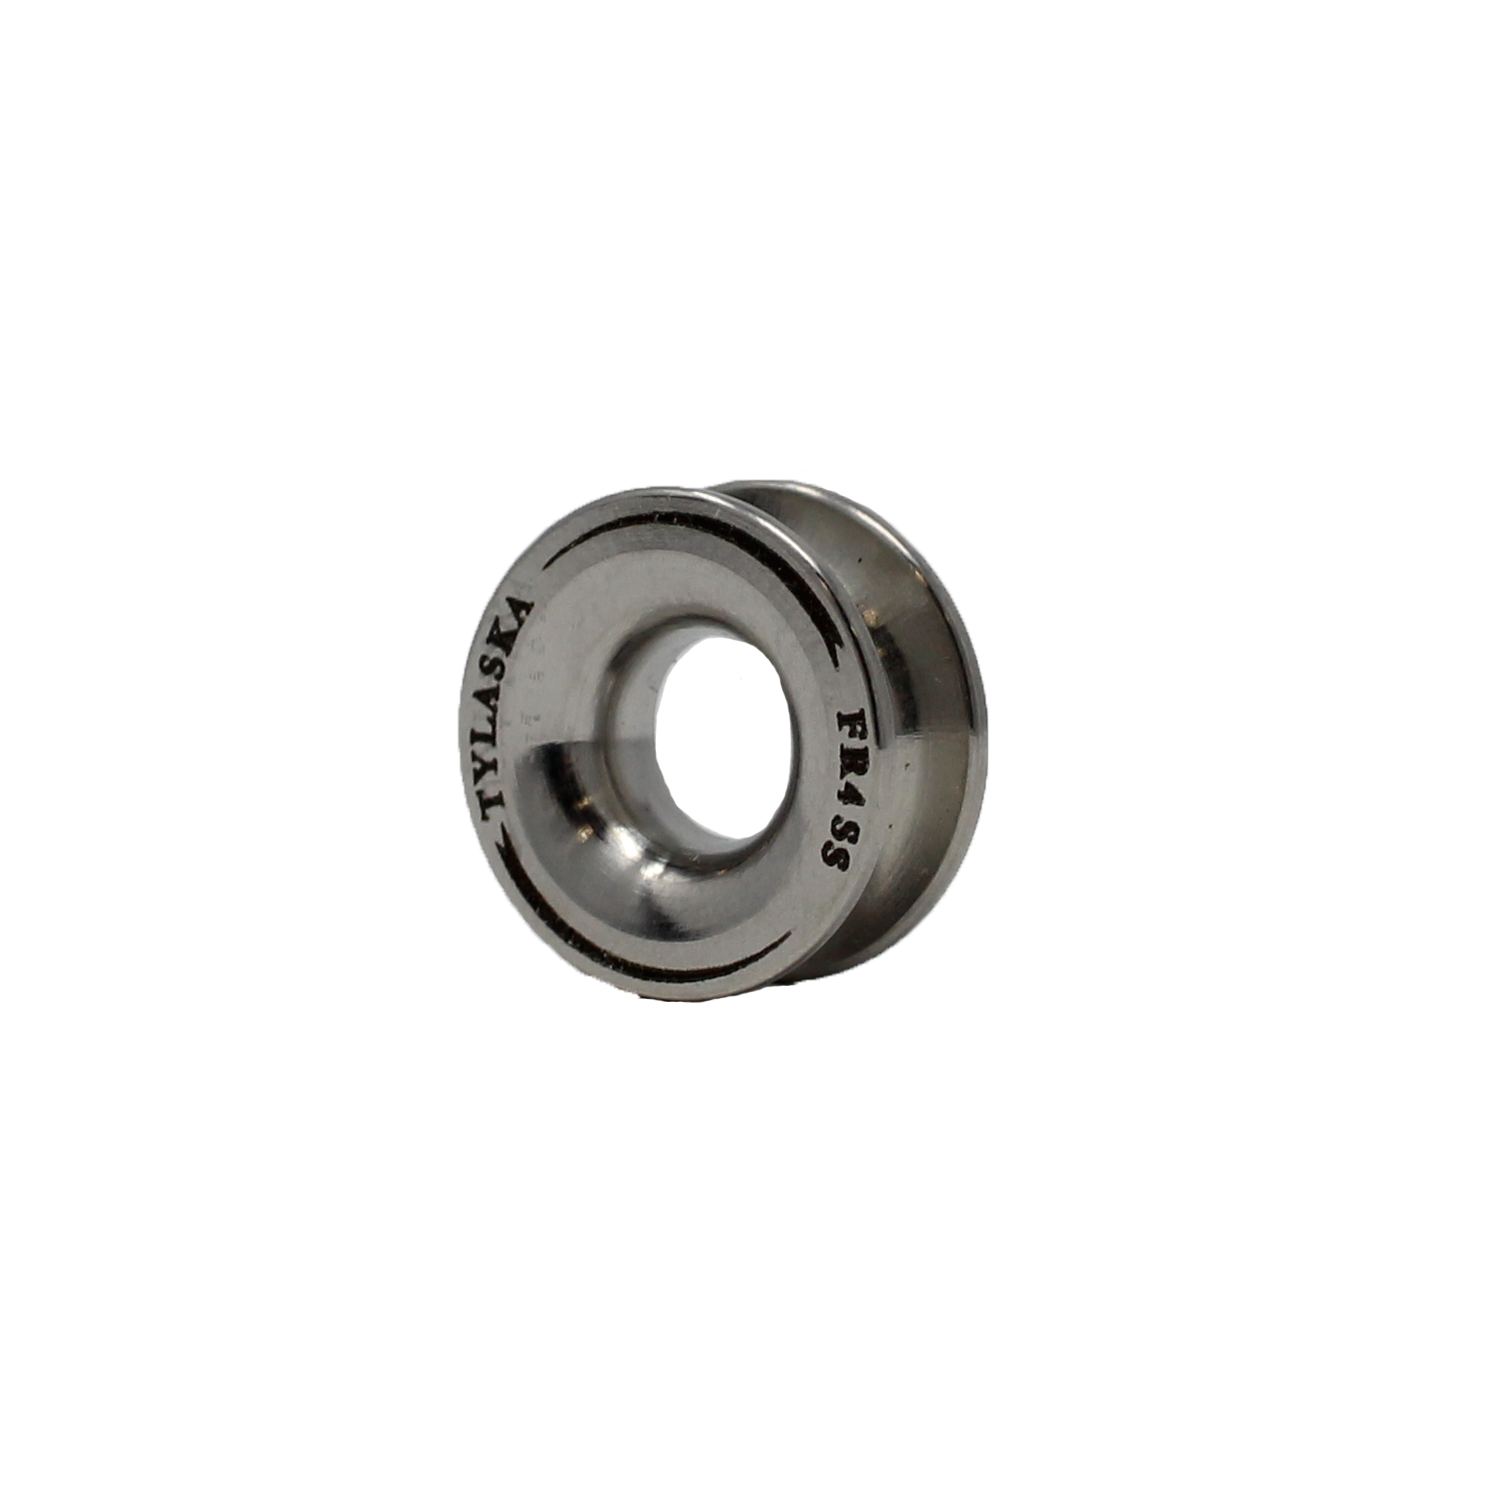 Tylaska FR4SS Stainless Ferrule low friction ring direct from Tylaska Marine